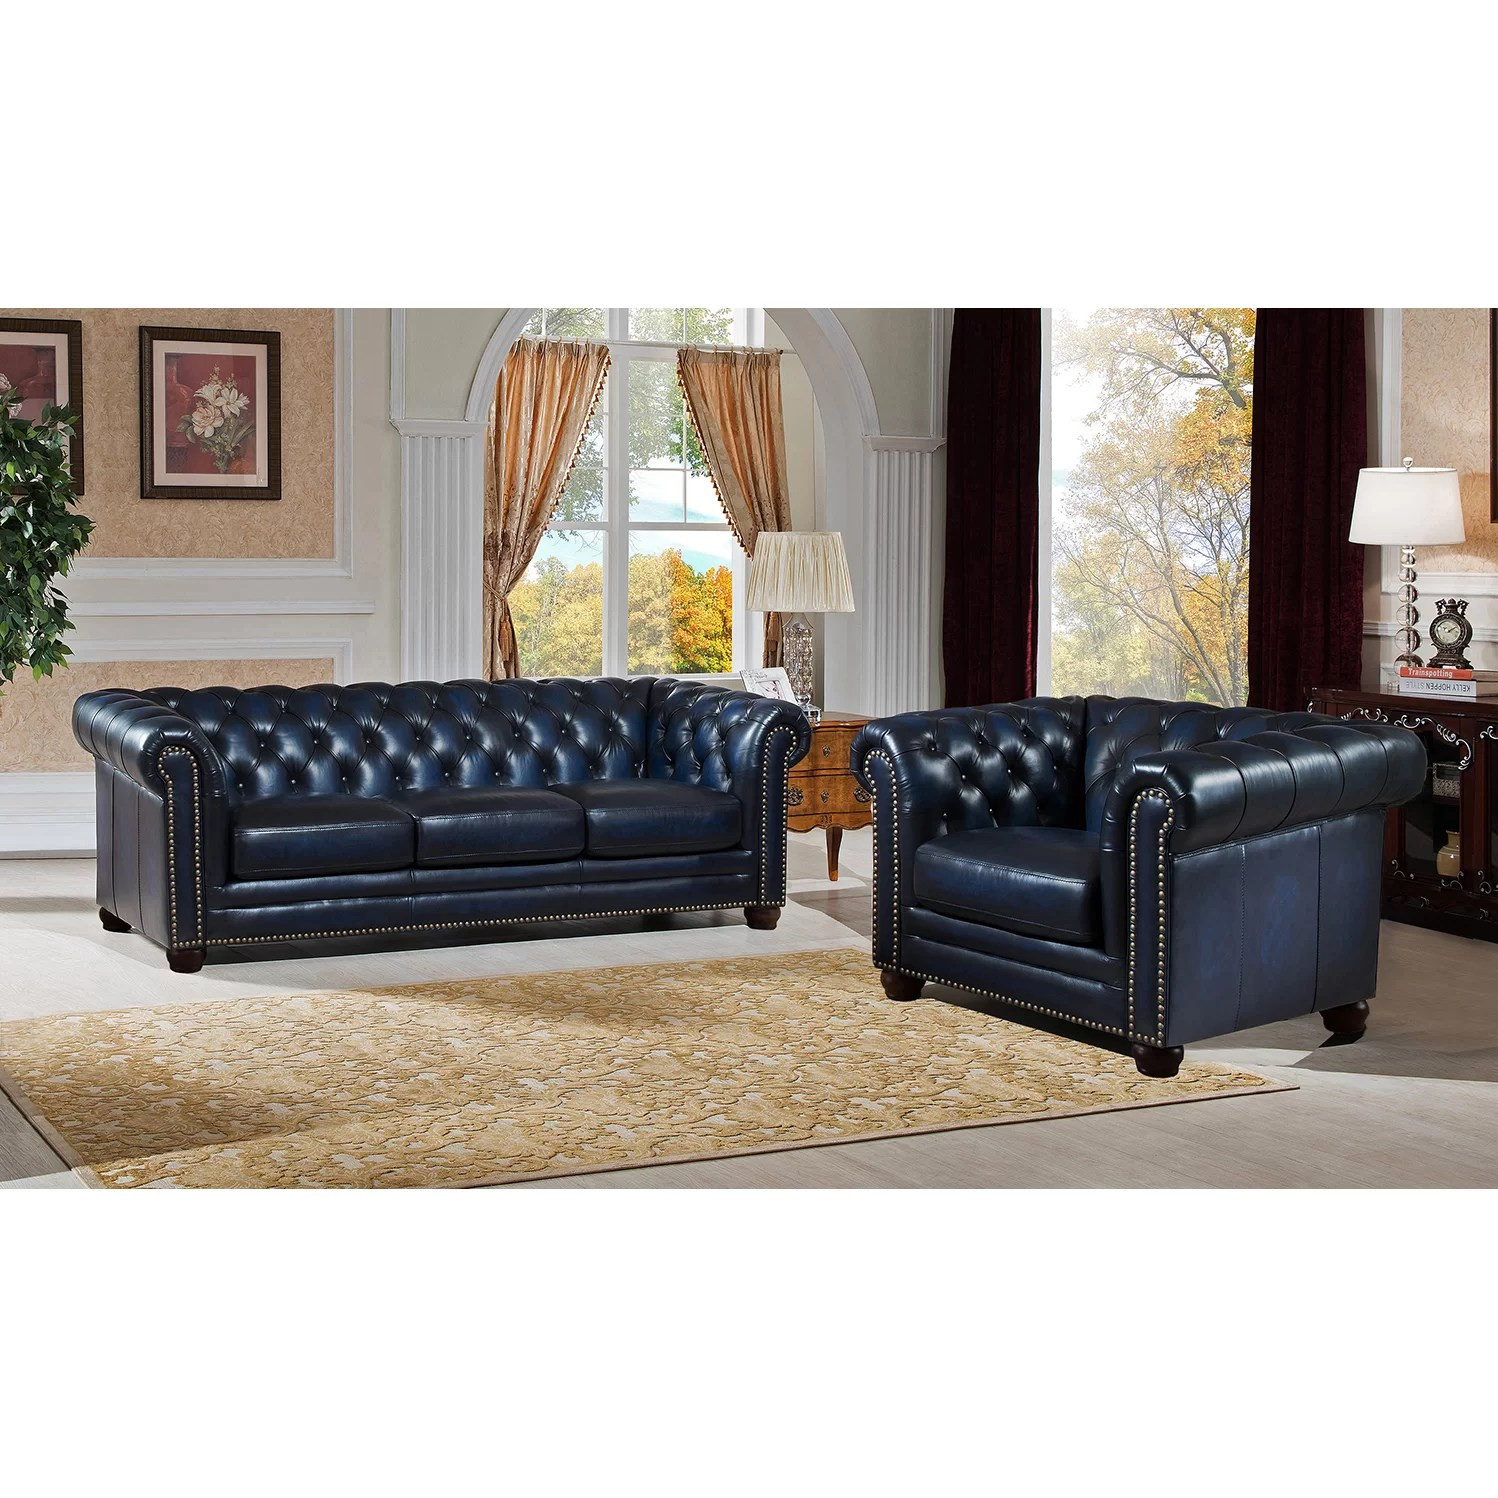 genuine leather sofa sets sectional sofas for 300 amax nebraska chesterfield and chair